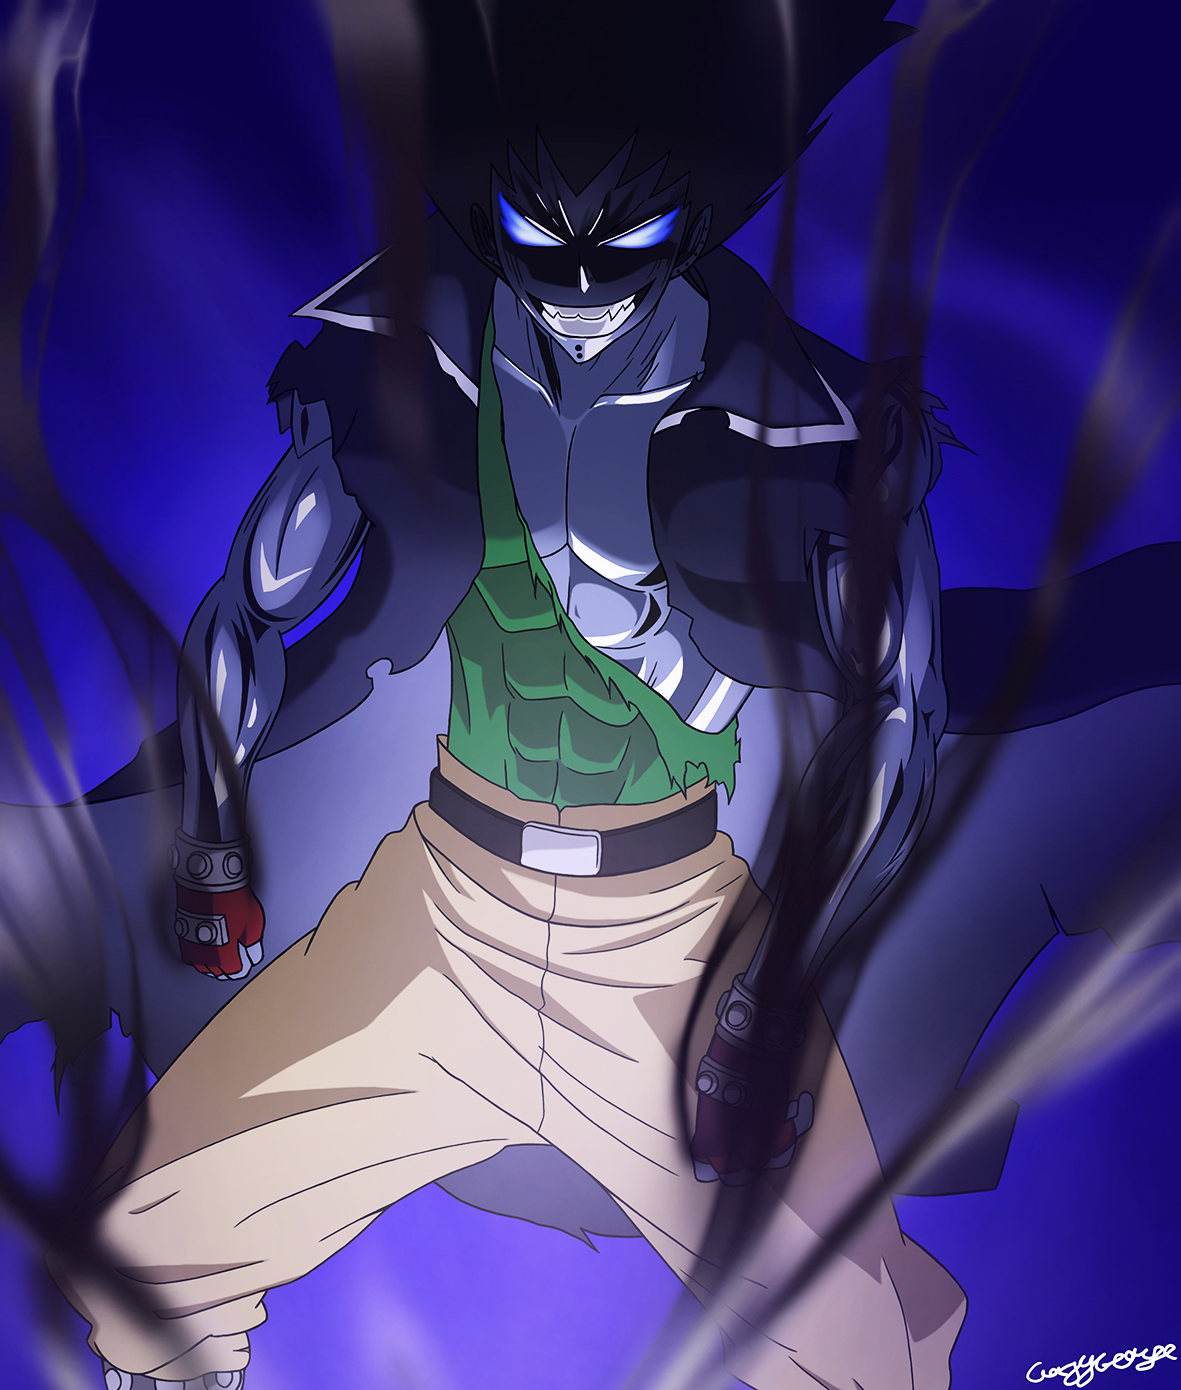 fairy tail gajeel iron shadow dragonGajeel Shadow Iron Dragon